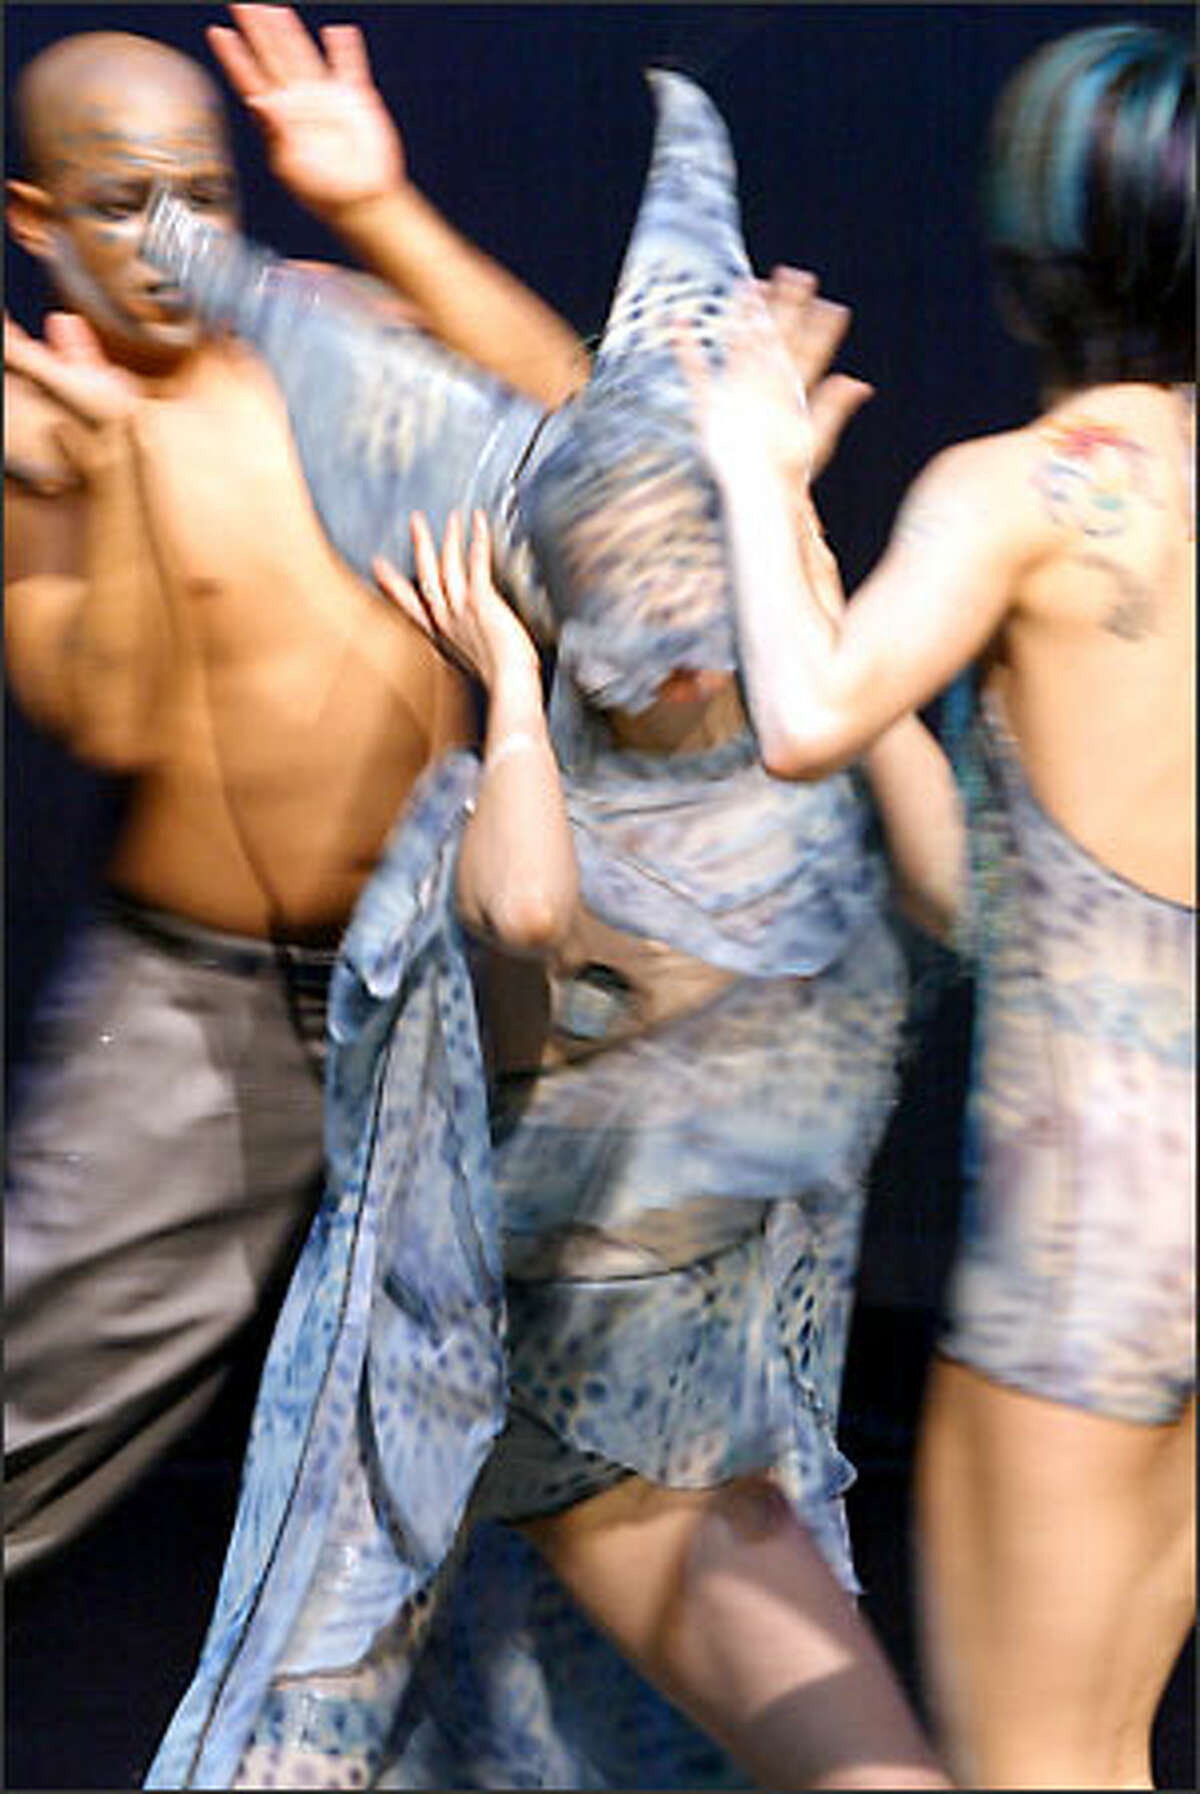 Choreographer Maureen Whiting, center, created a performance that plays off of David Bowie's glamrock style and interest in otherworldly beings. With her are Matthew Reynolds, left, and Michele Steinwald.